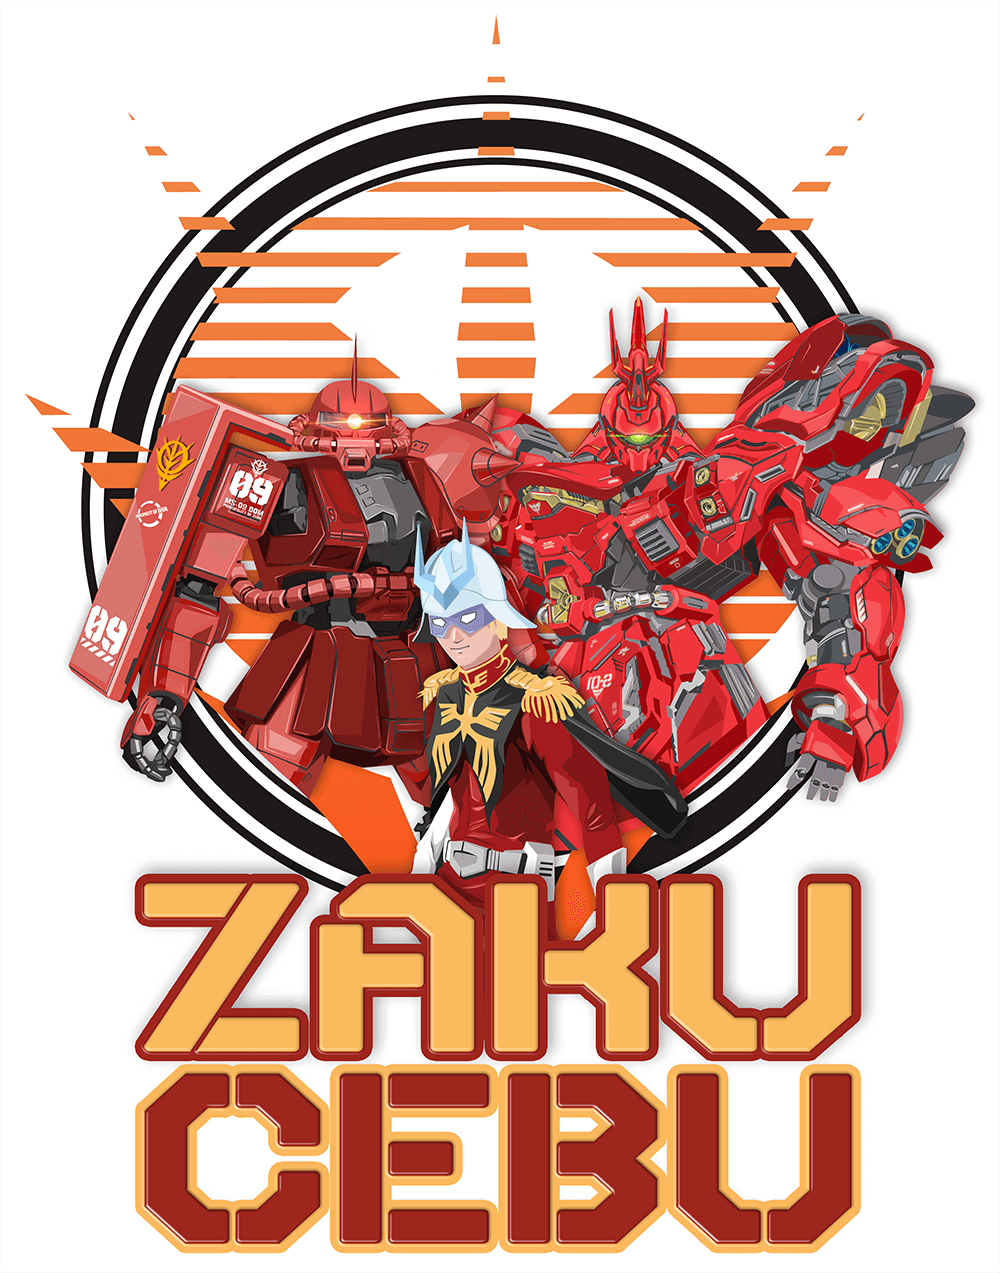 Zaku Cebu | Cebu's Home to the Biggest Gundam Hobby Online Shop with the Widest Selection of Gunpla kits on the island